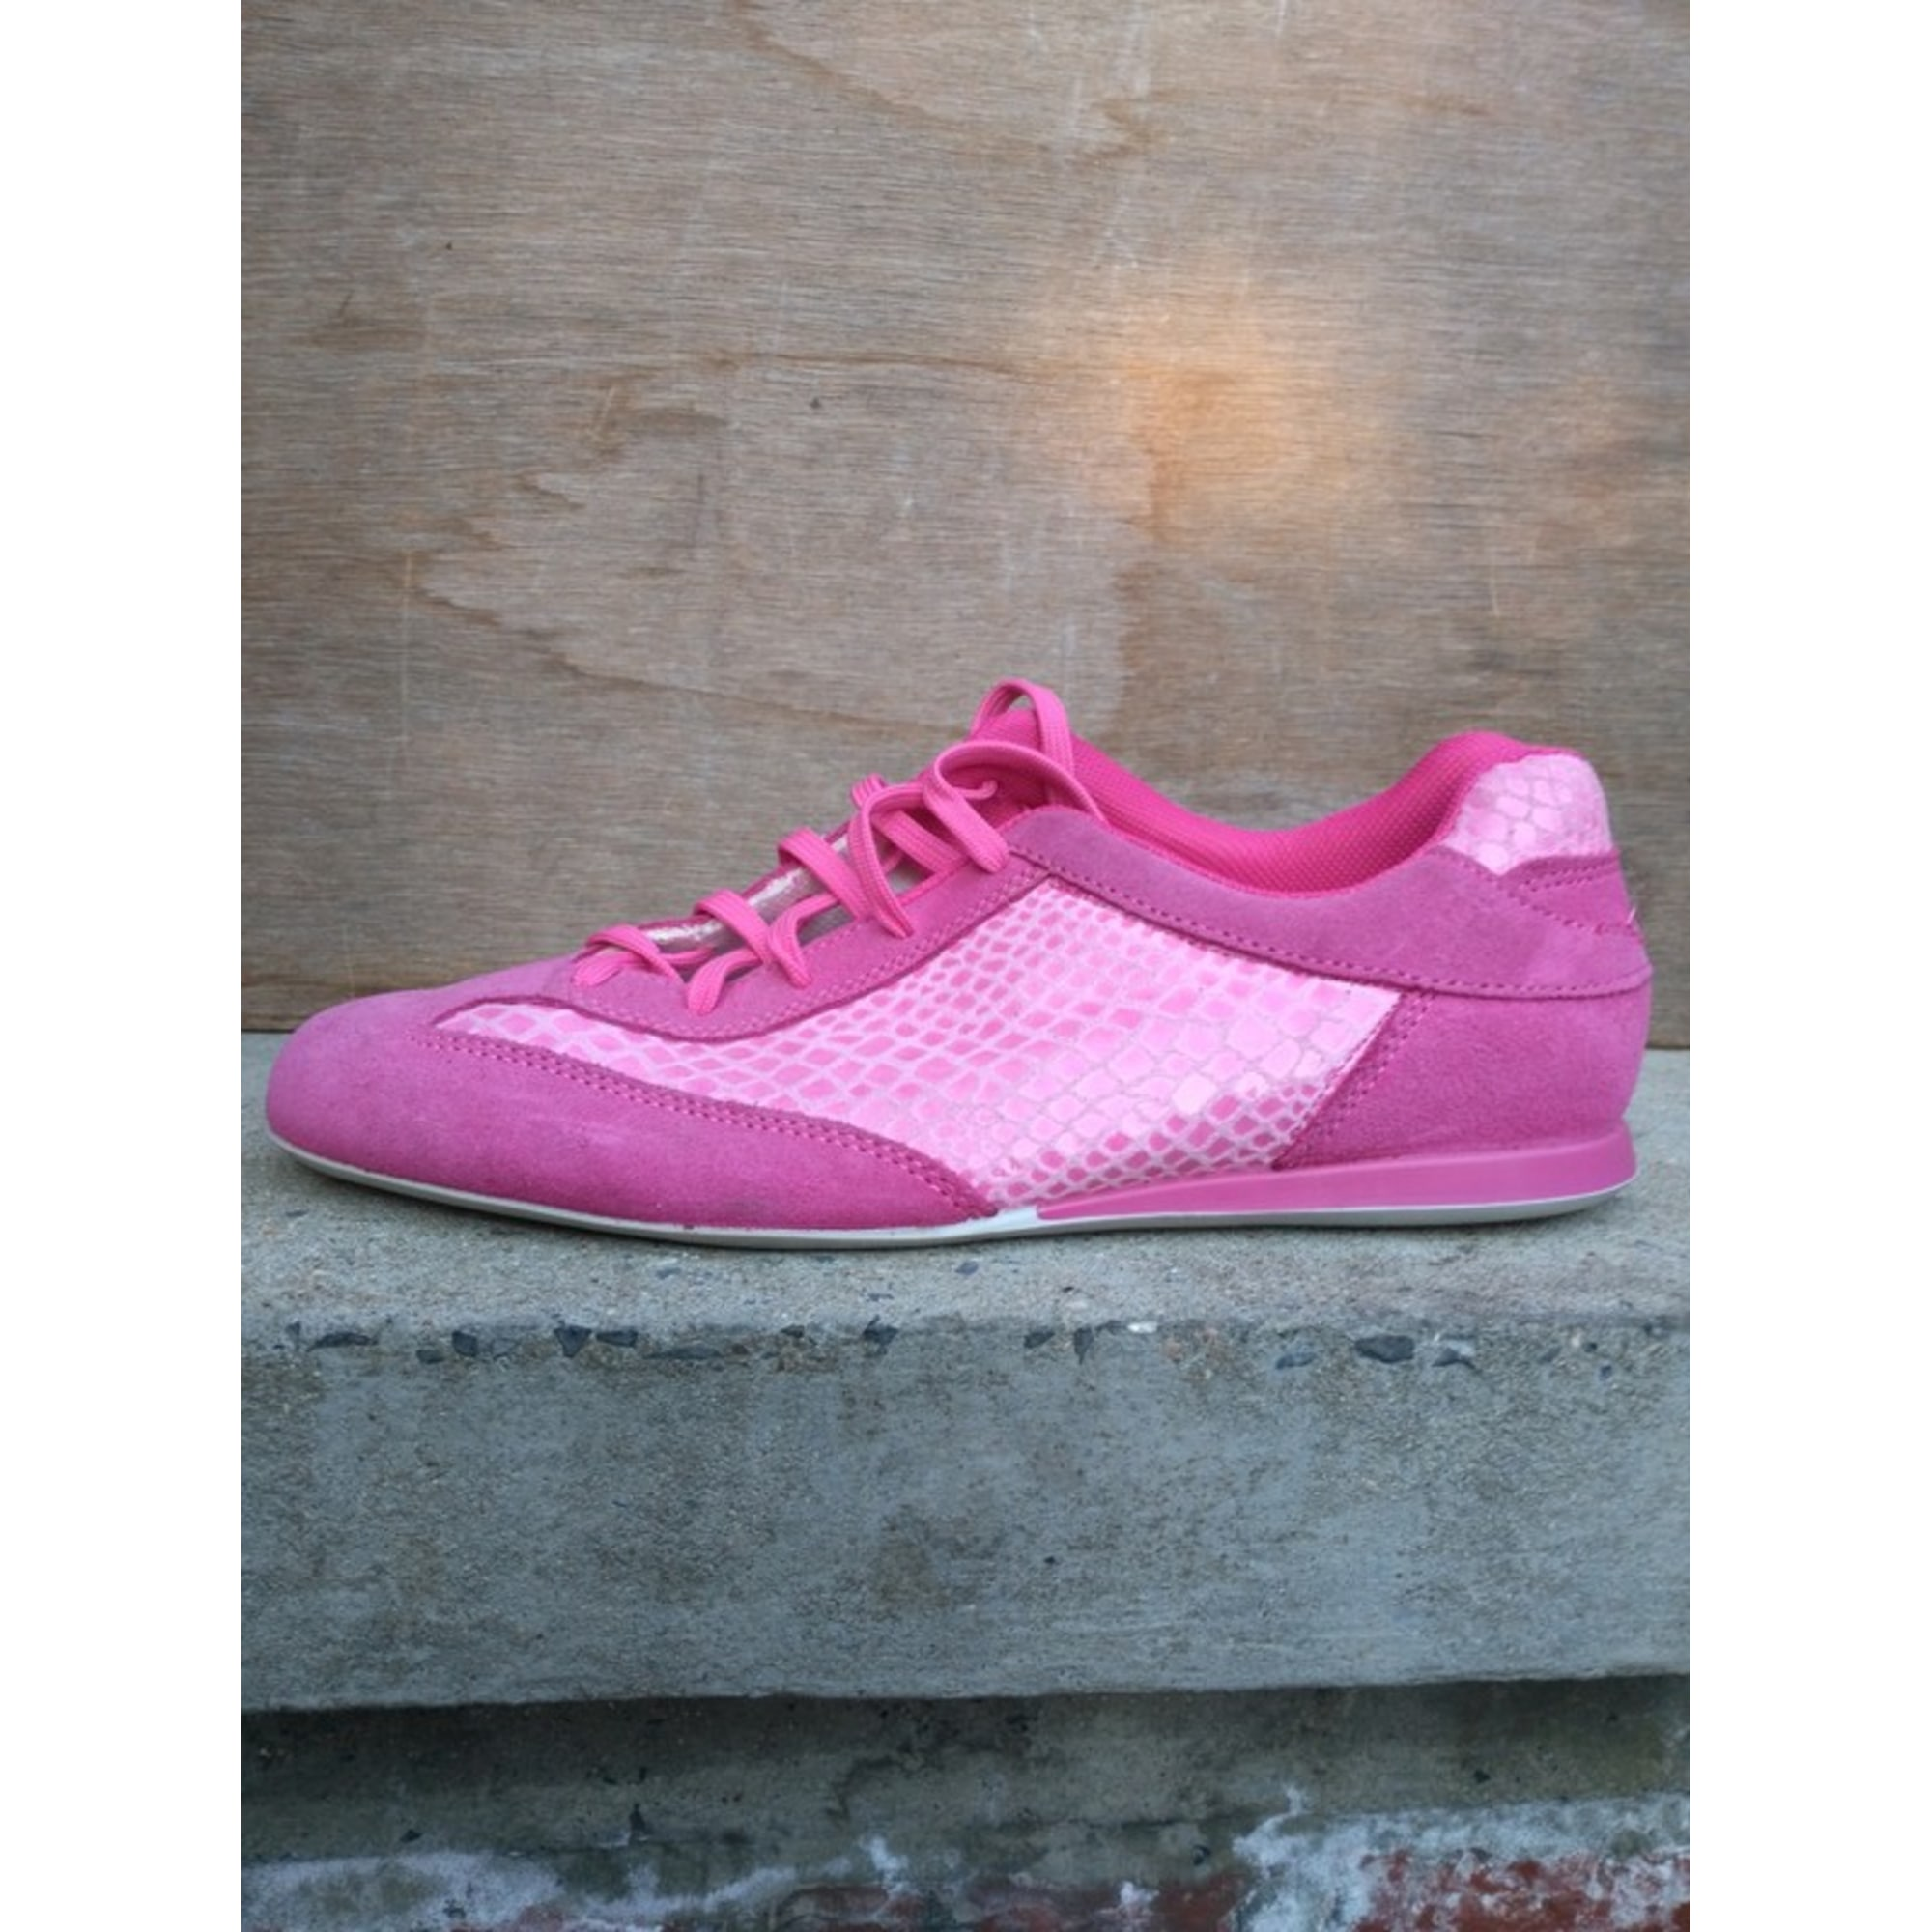 Baskets STREET SHOES Rose, fuschia, vieux rose